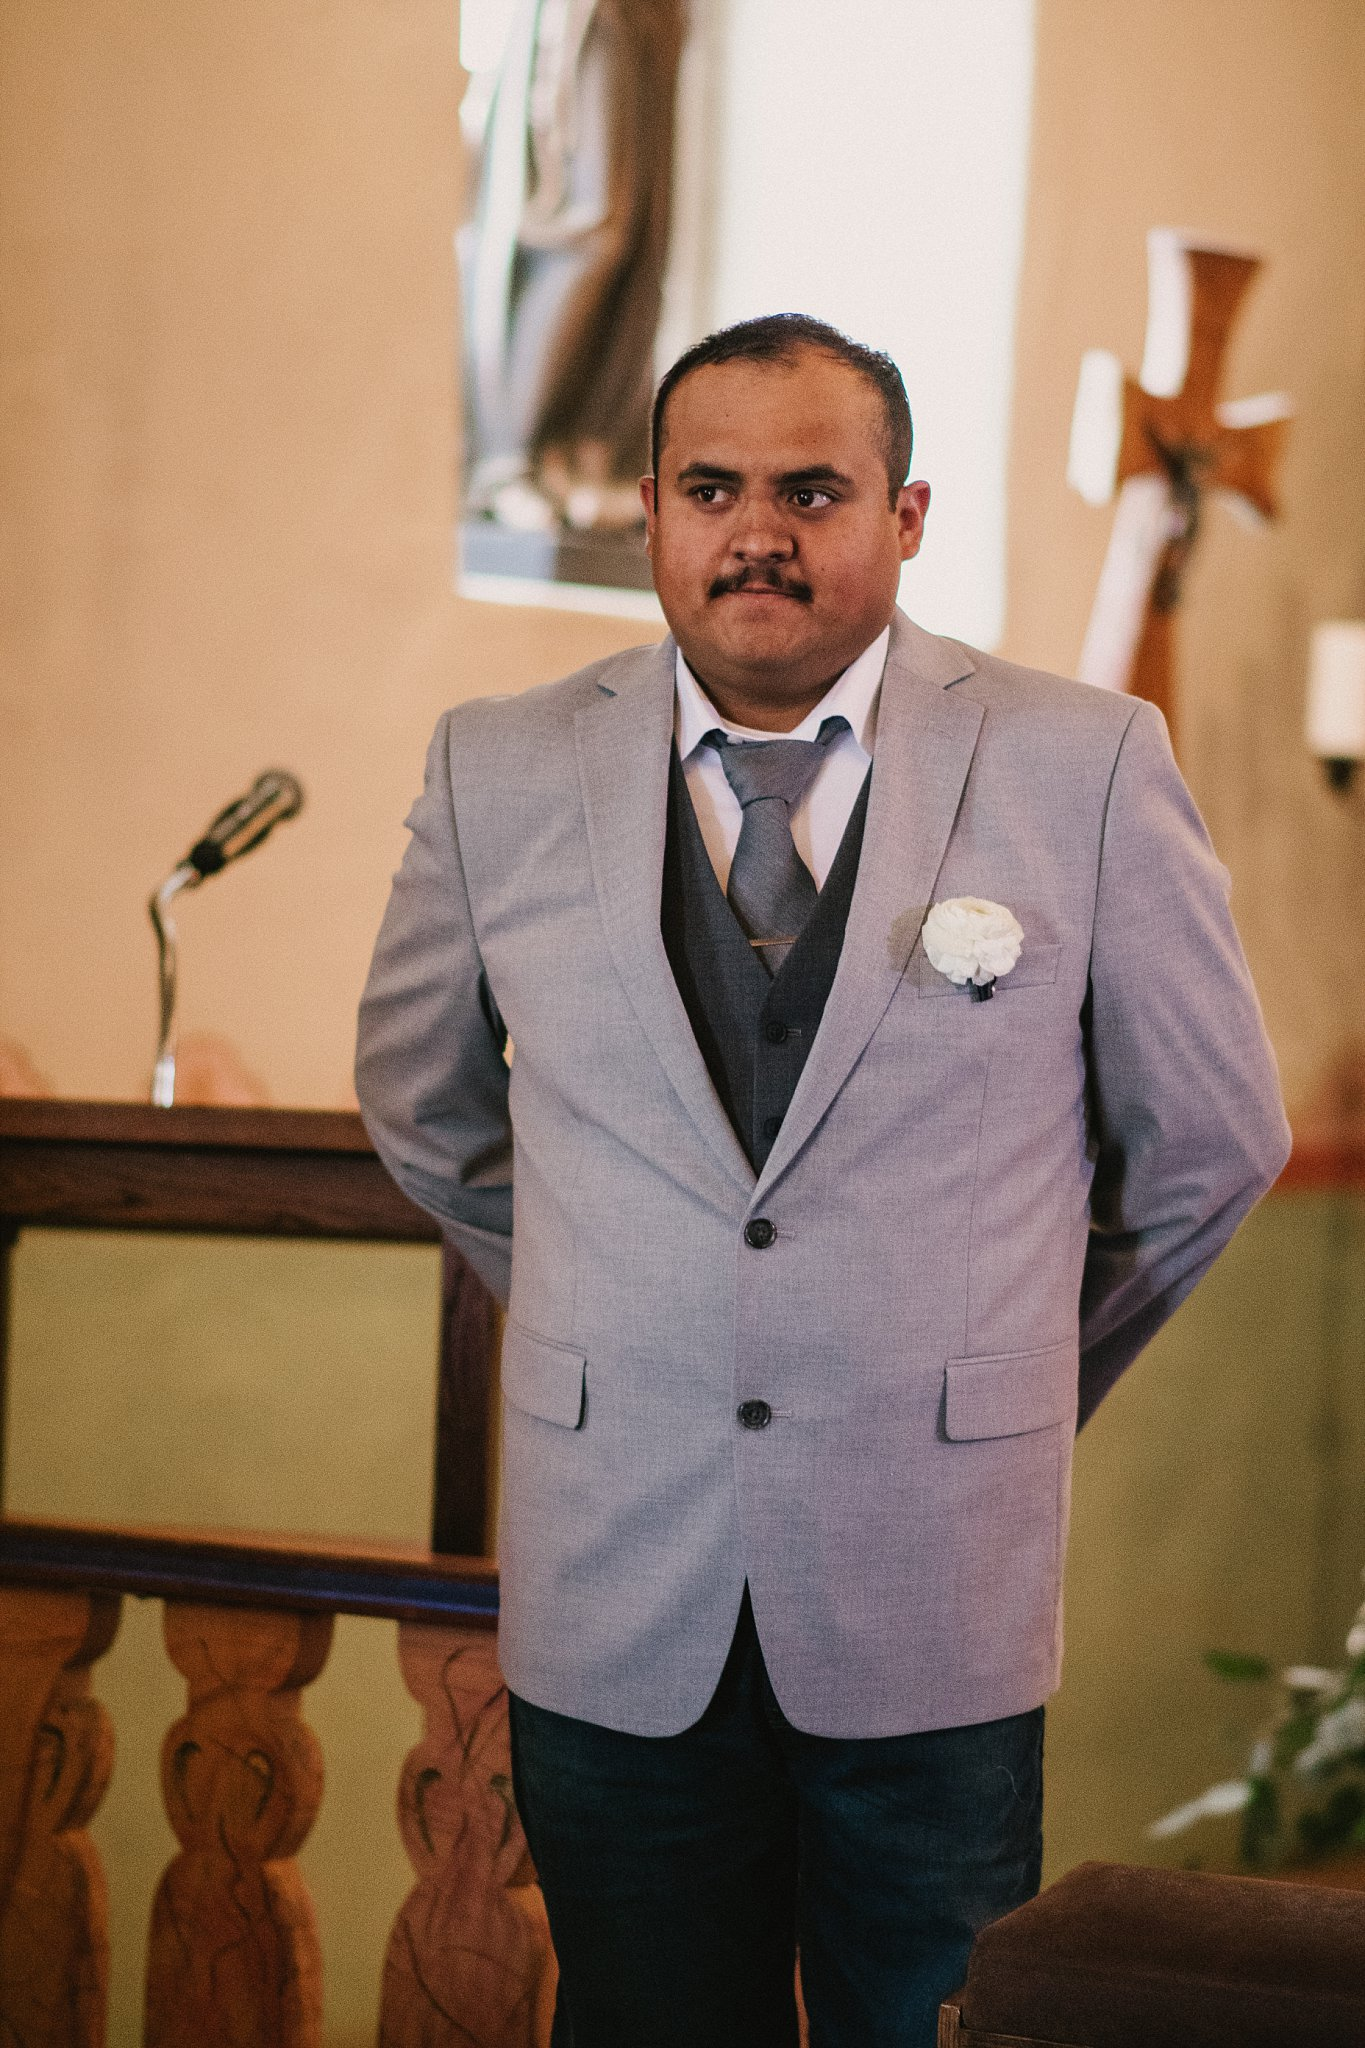 soledad-mission-wedding-photographer-drew-zavala-14.jpg